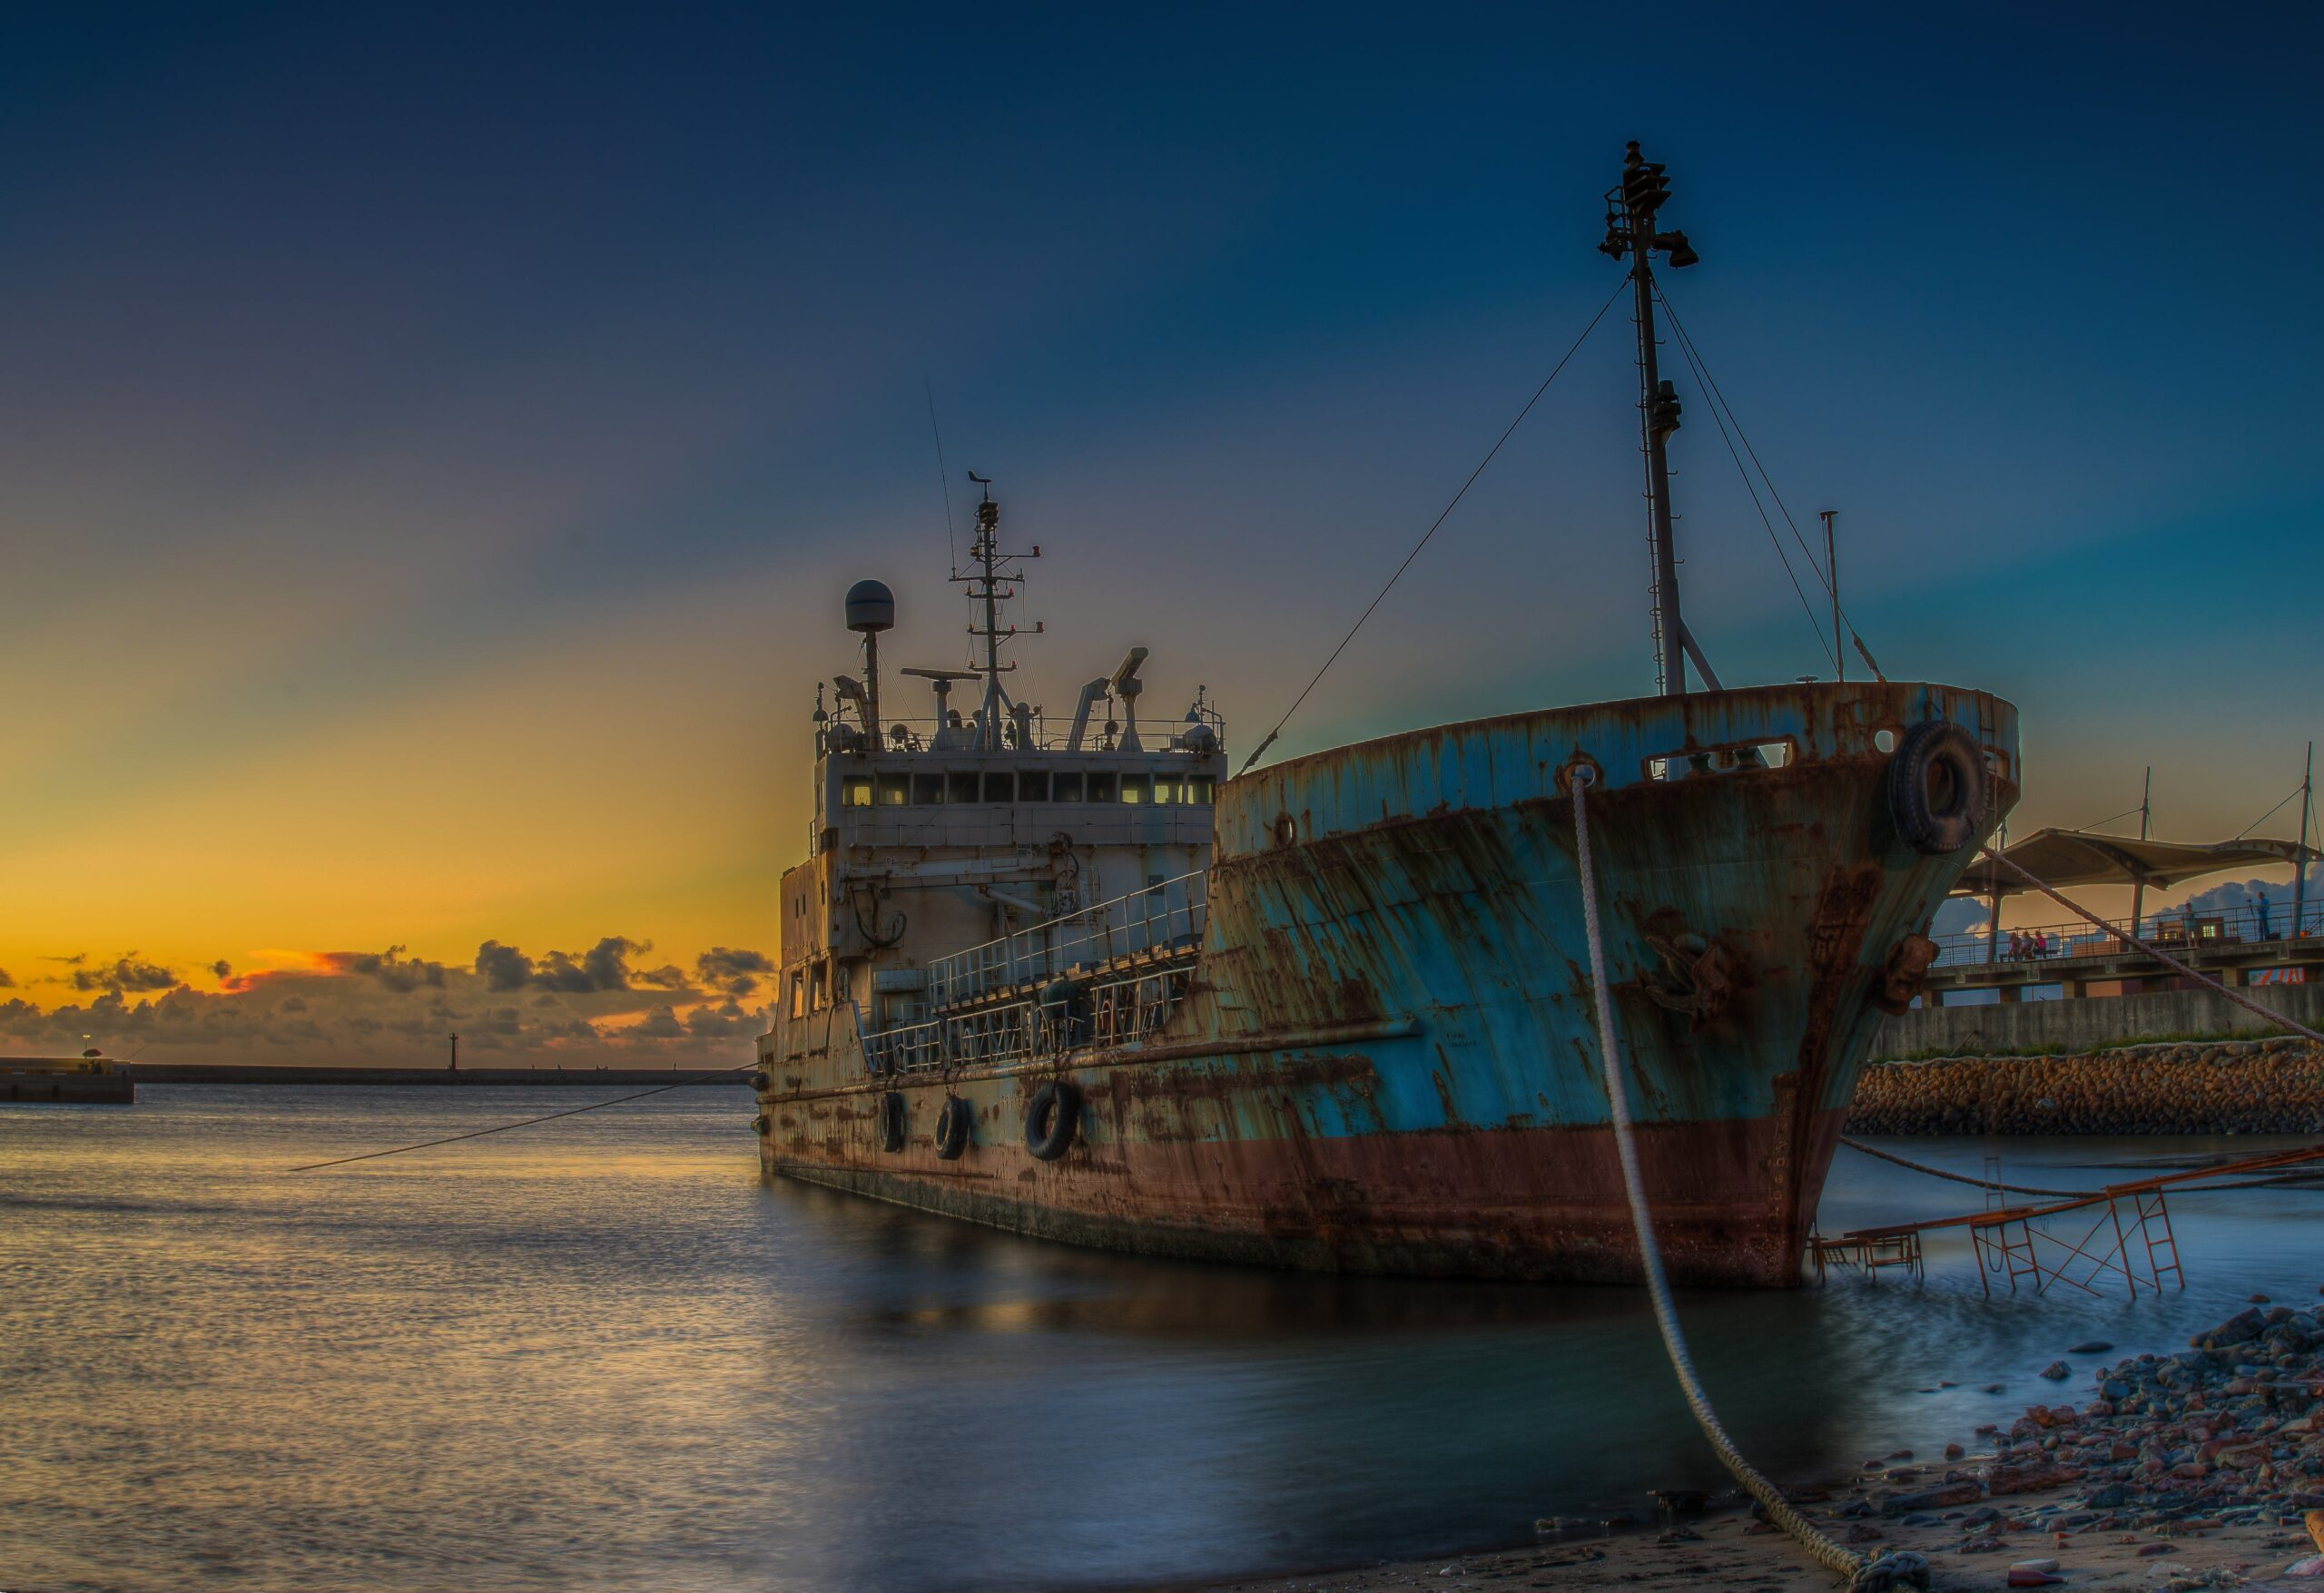 Old ship at sunset